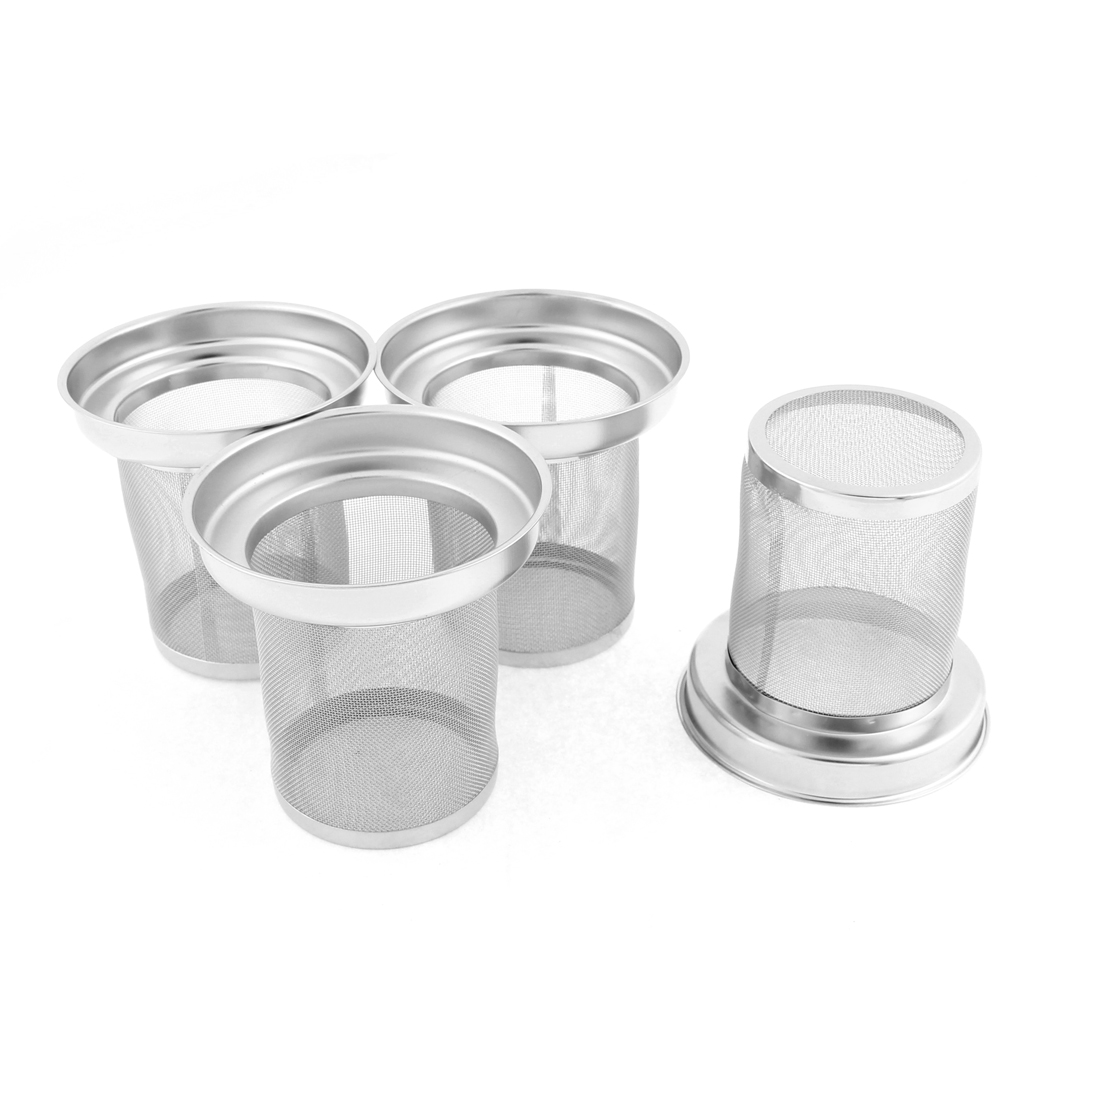 Stainless Steel Mesh Filter Loose Spice Ball Tea Infuser Strainer 80mm Dia 4Pcs